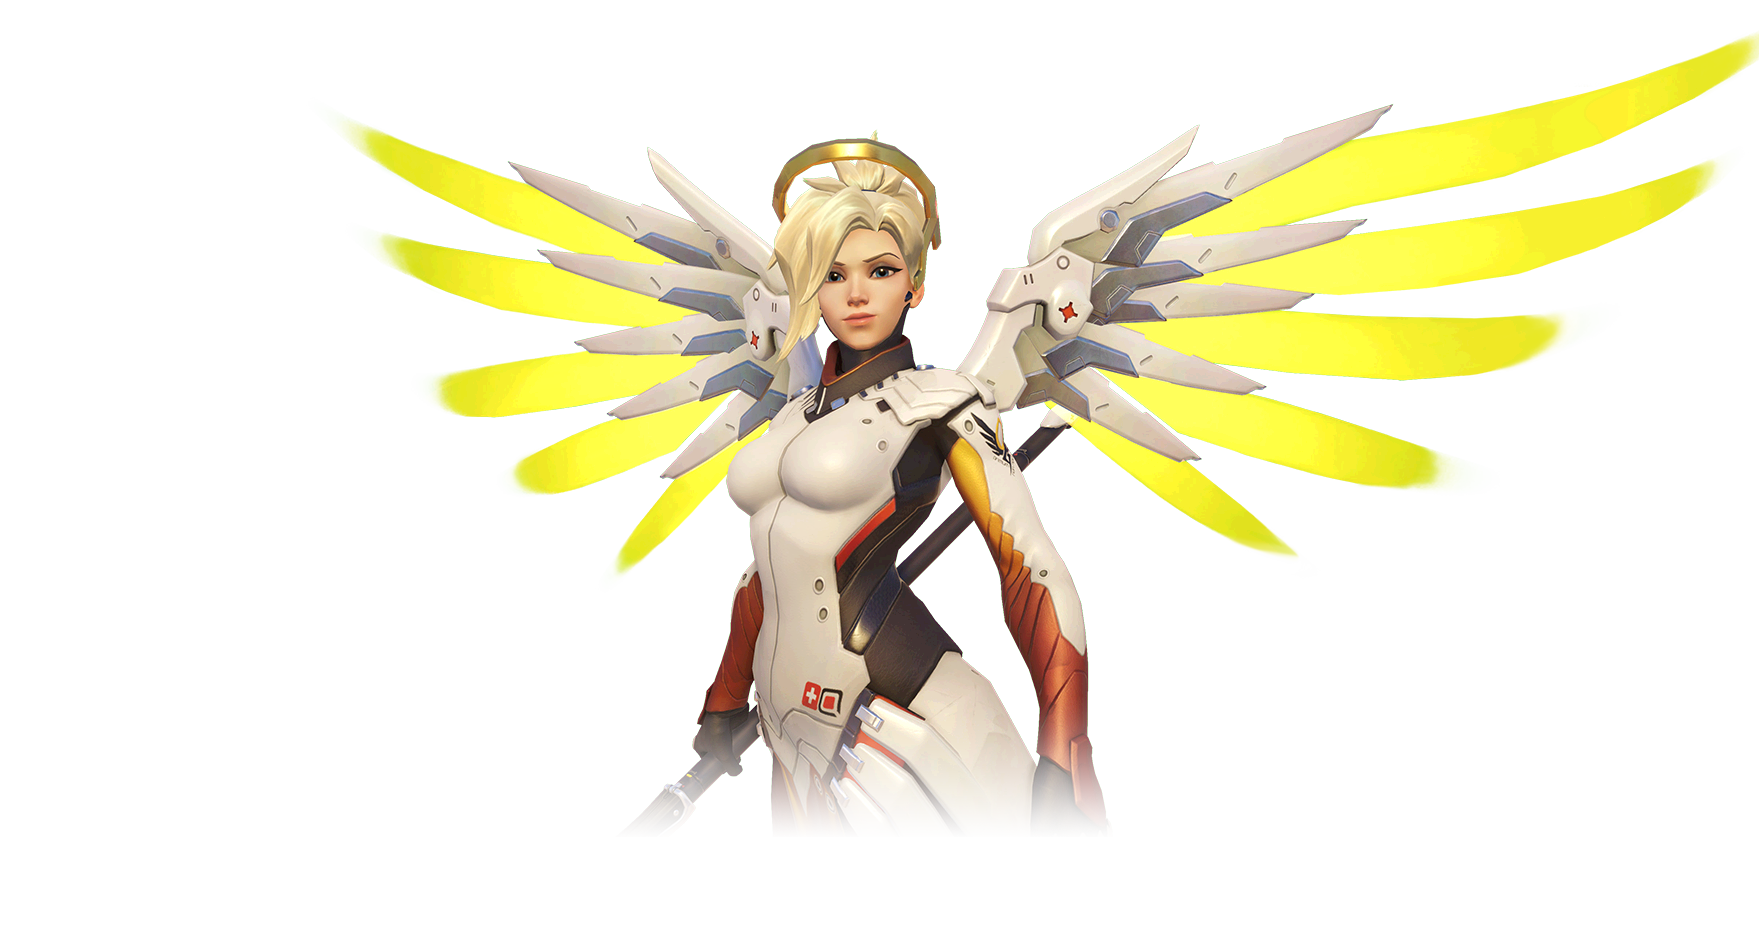 Datei:Mercy.png